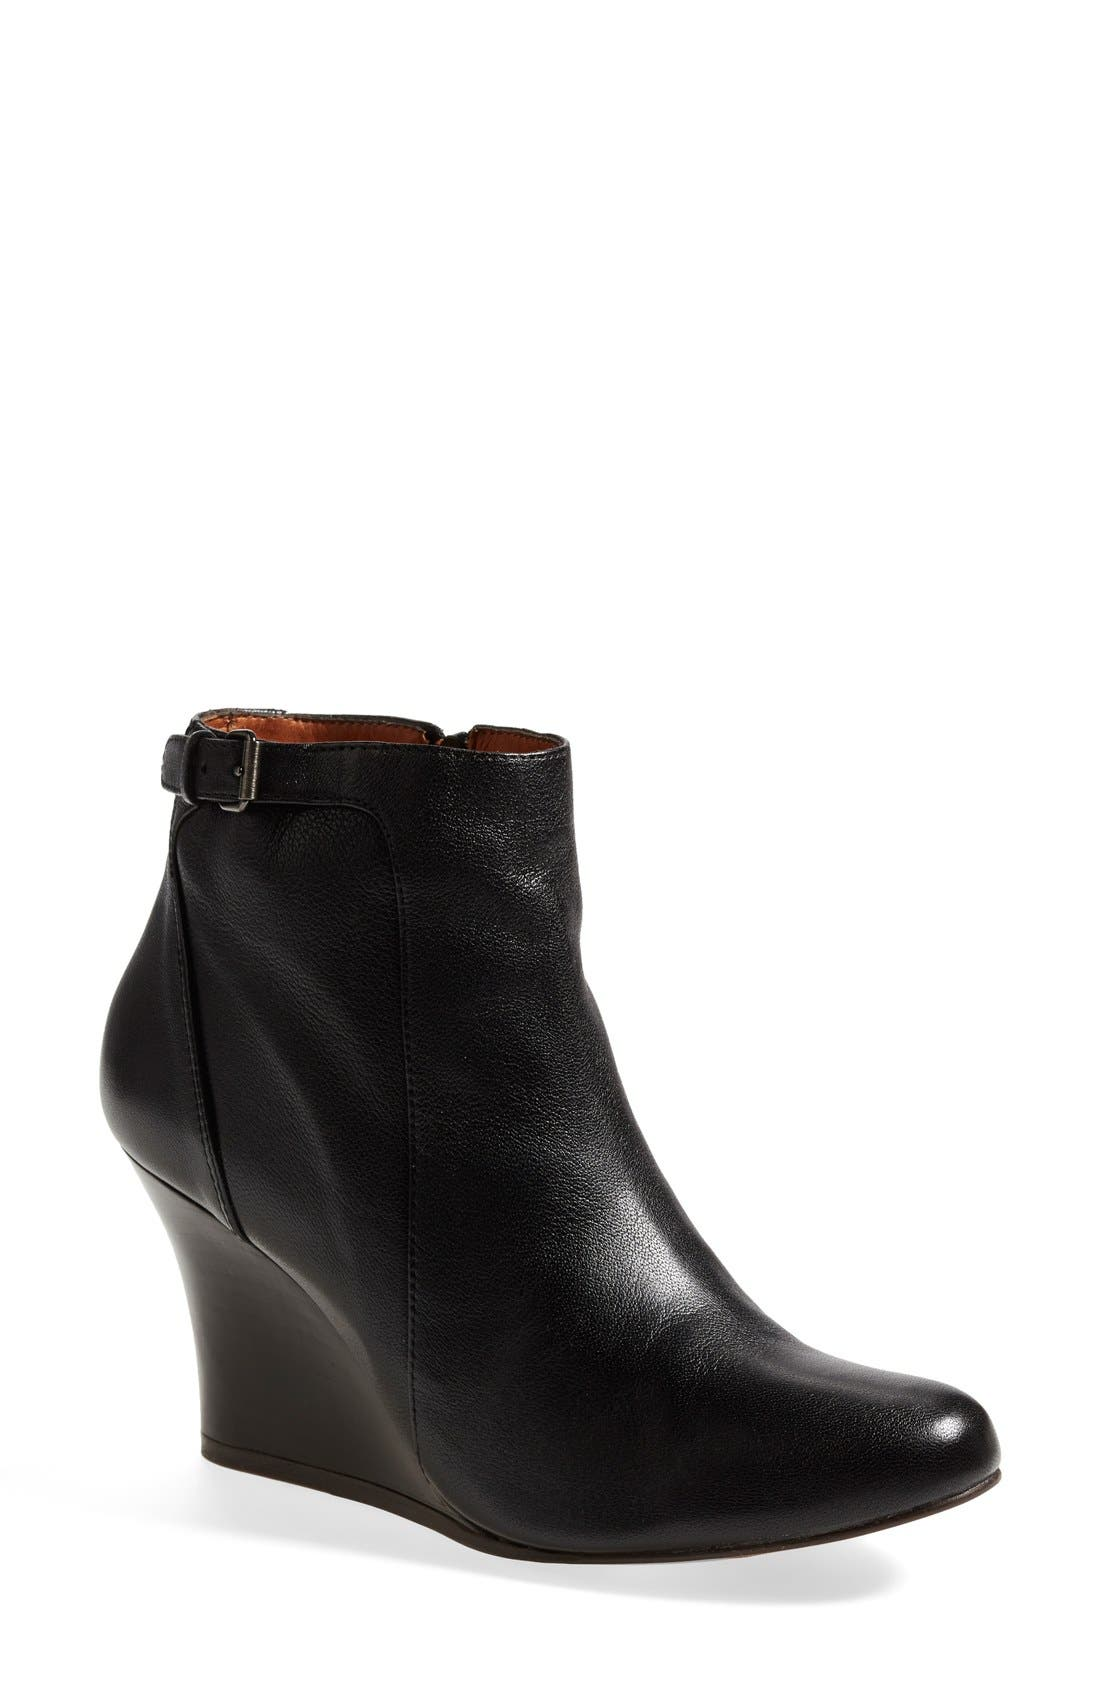 Alternate Image 1 Selected - Lanvin Wedge Ankle Bootie (Women)